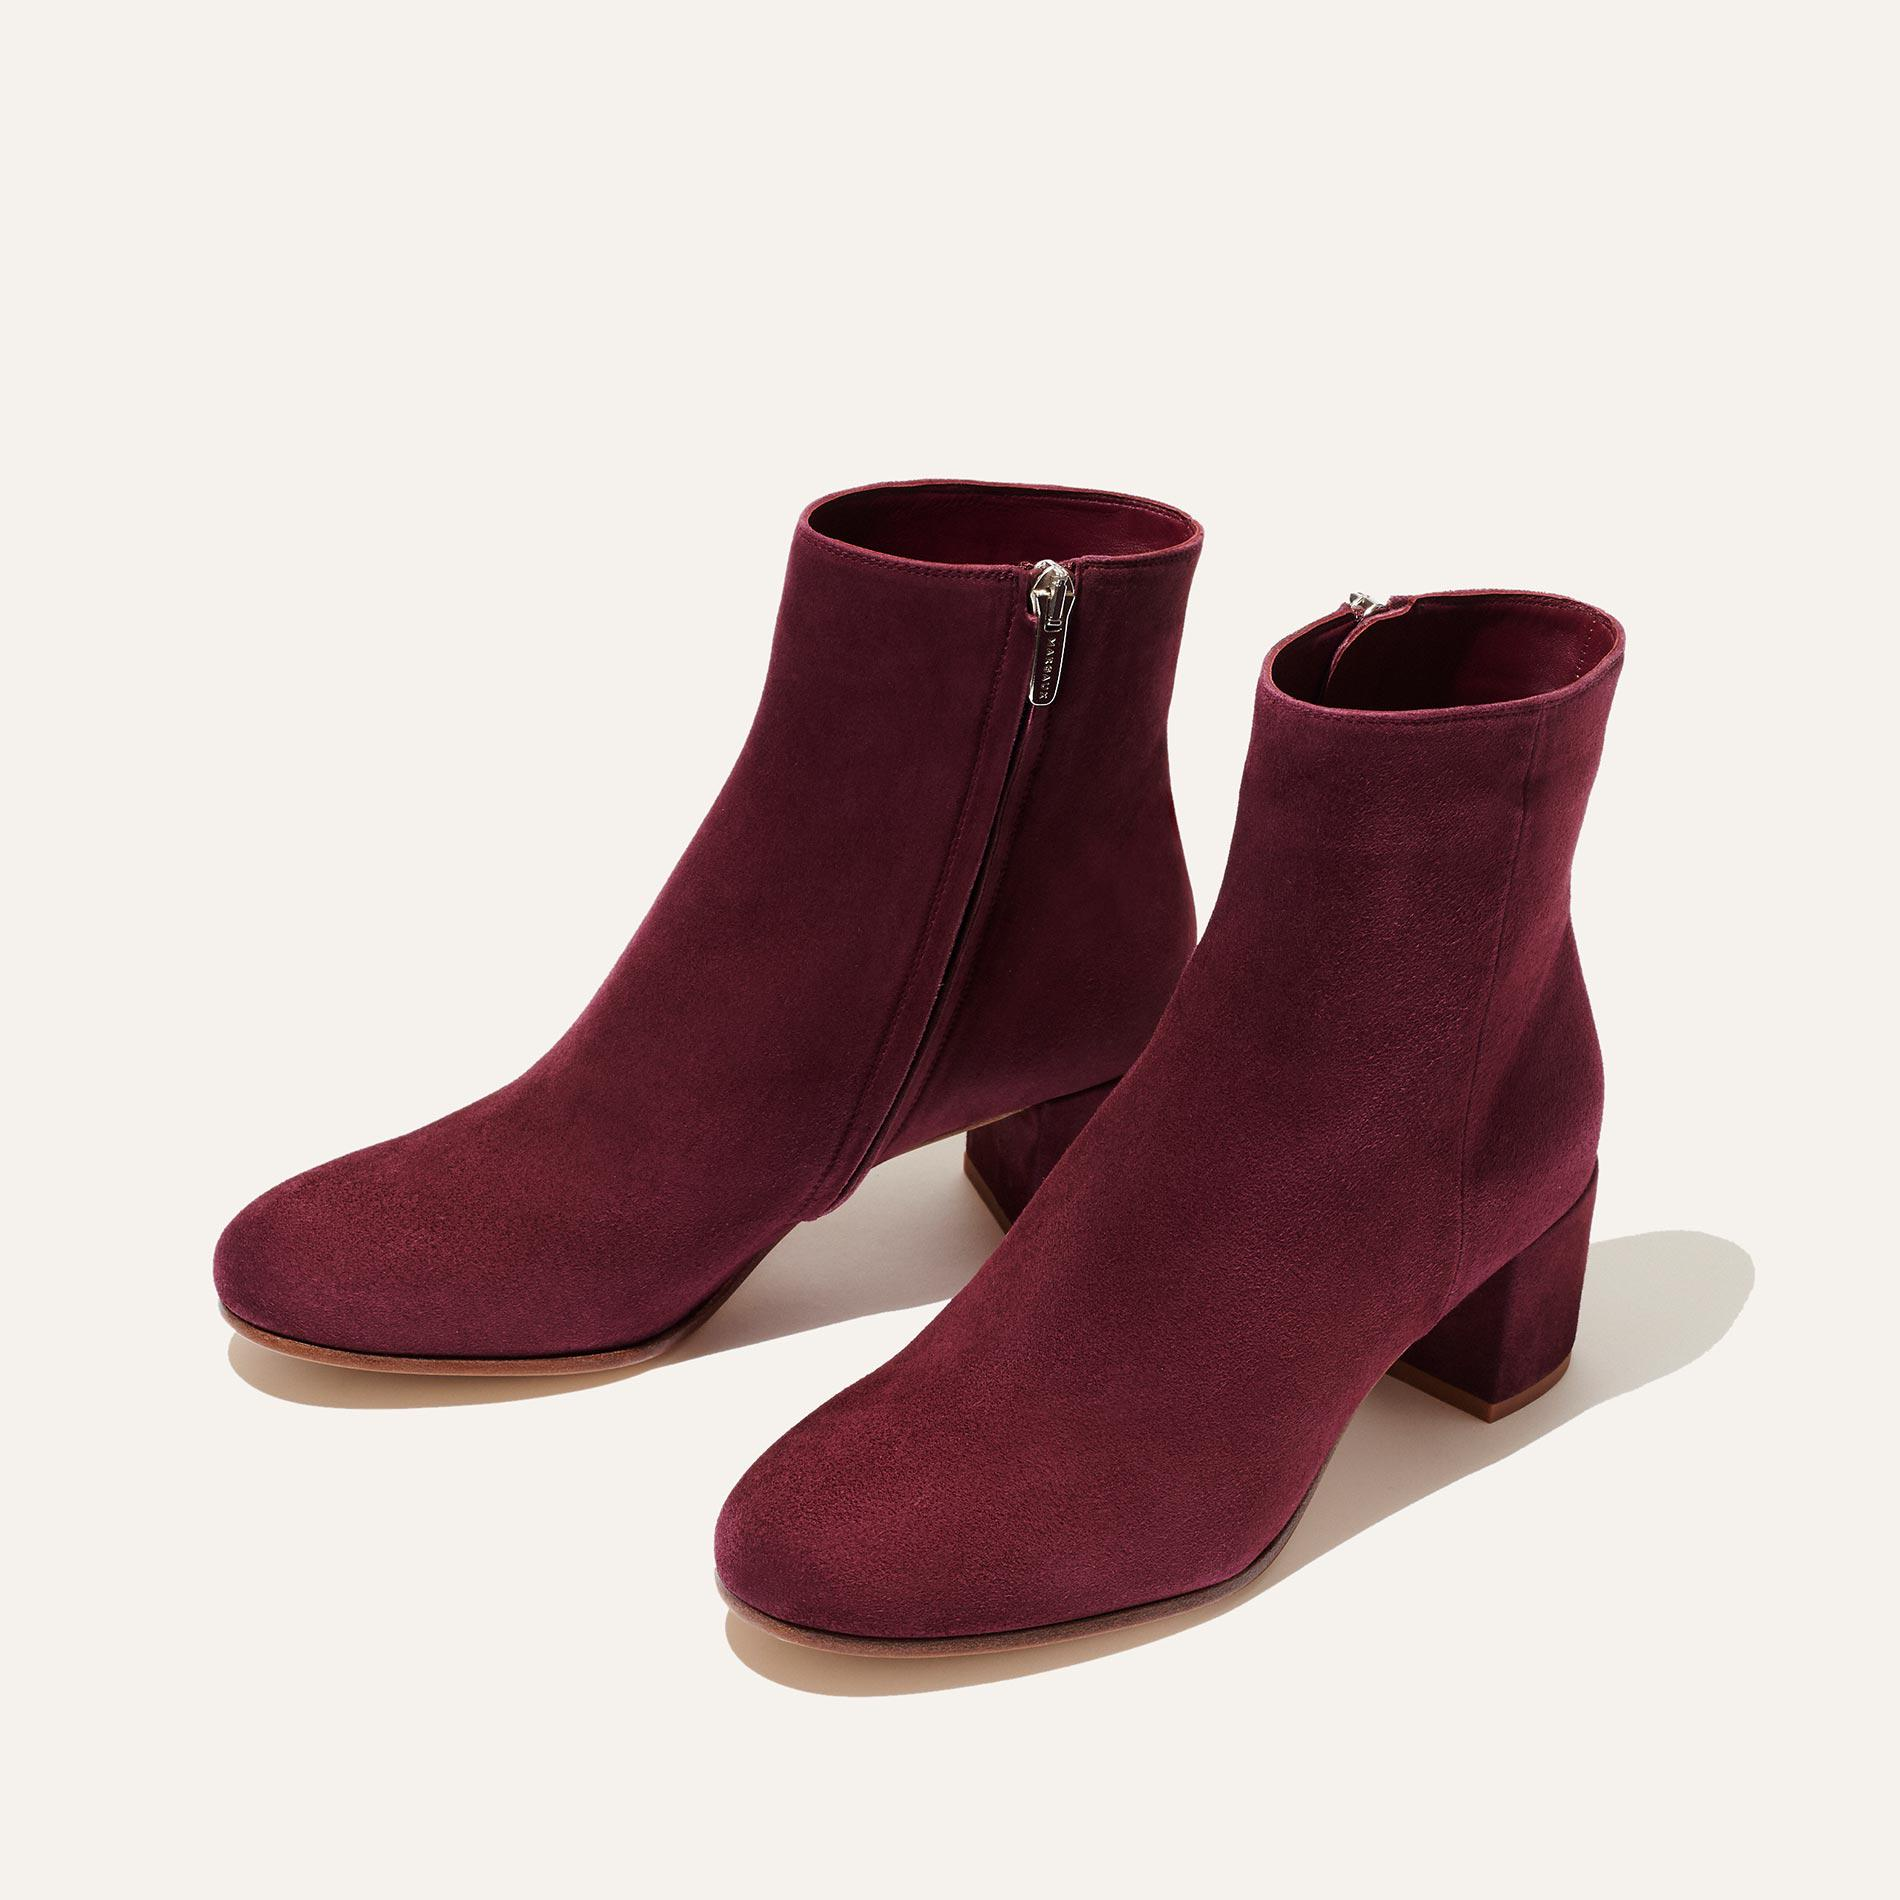 The Boot - Mulberry 1